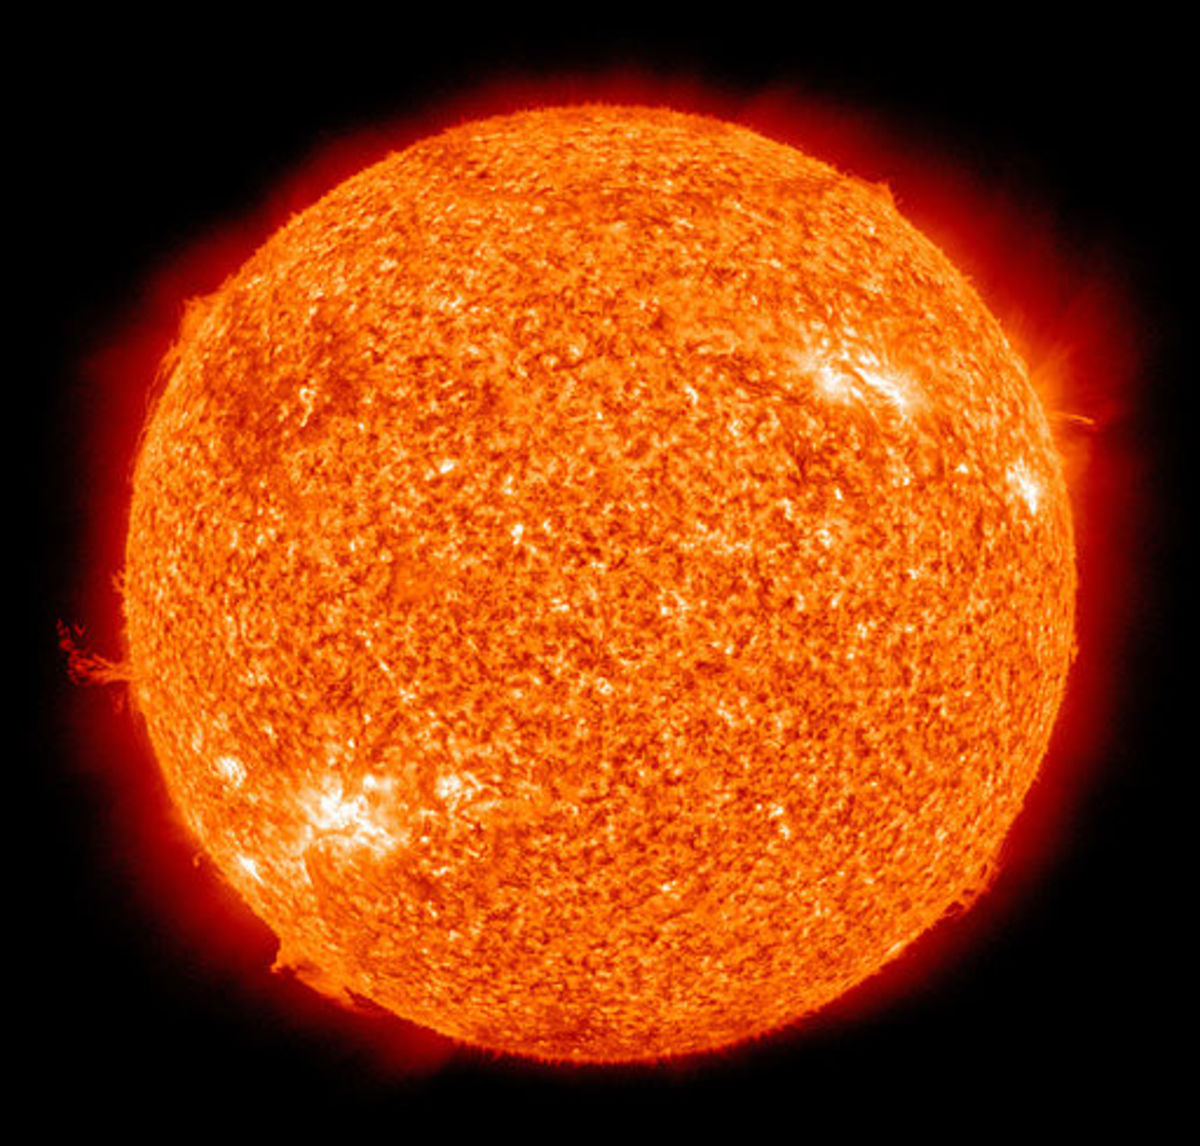 The physical characteristics of stars are usually quoted relative to our Sun (pictured).